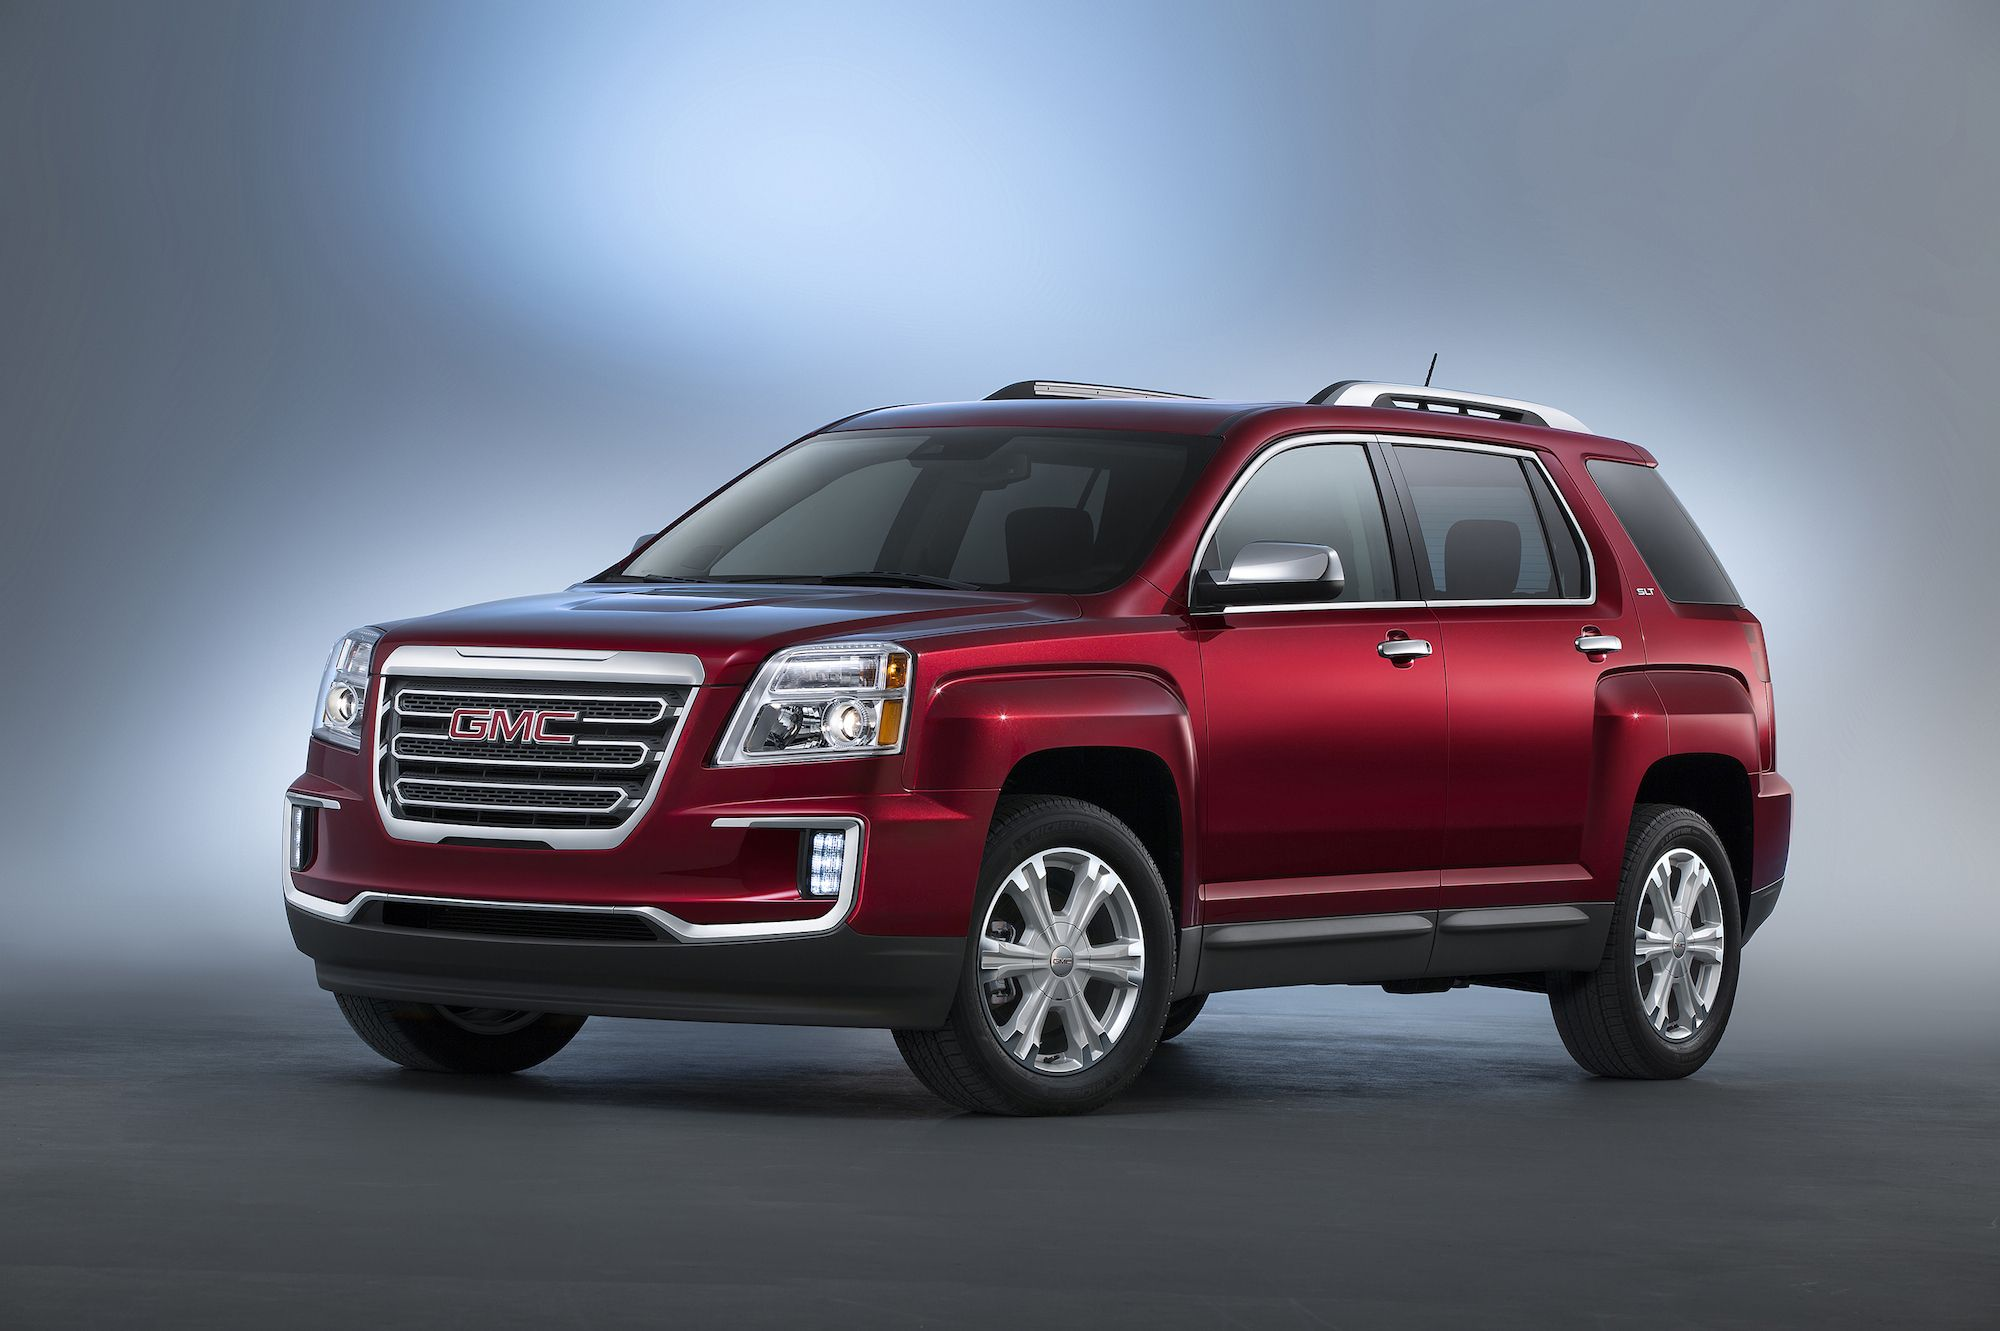 Updated For 2016 Gmc Terrain Compact Suv Lineup At Nyias 2015